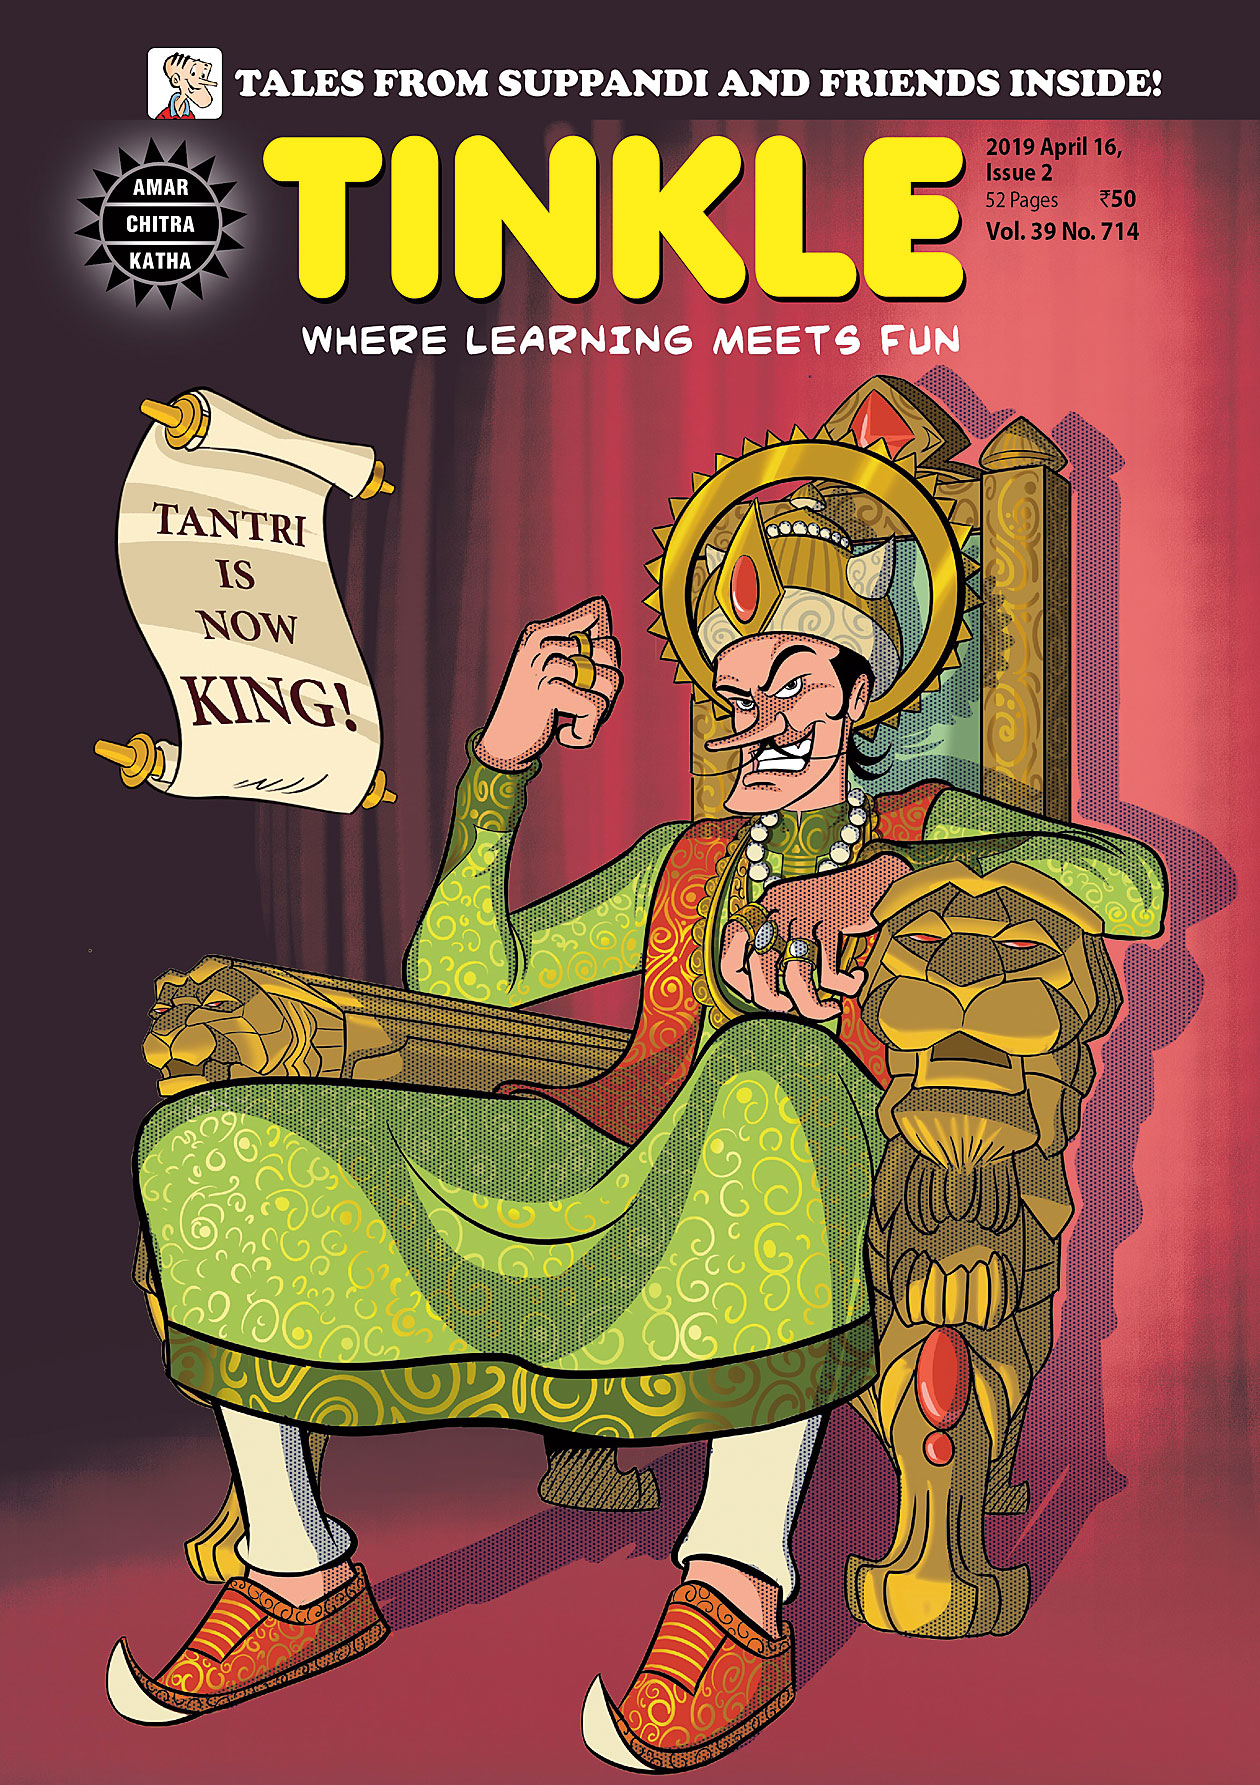 Cover of the recent Tinkle issue.